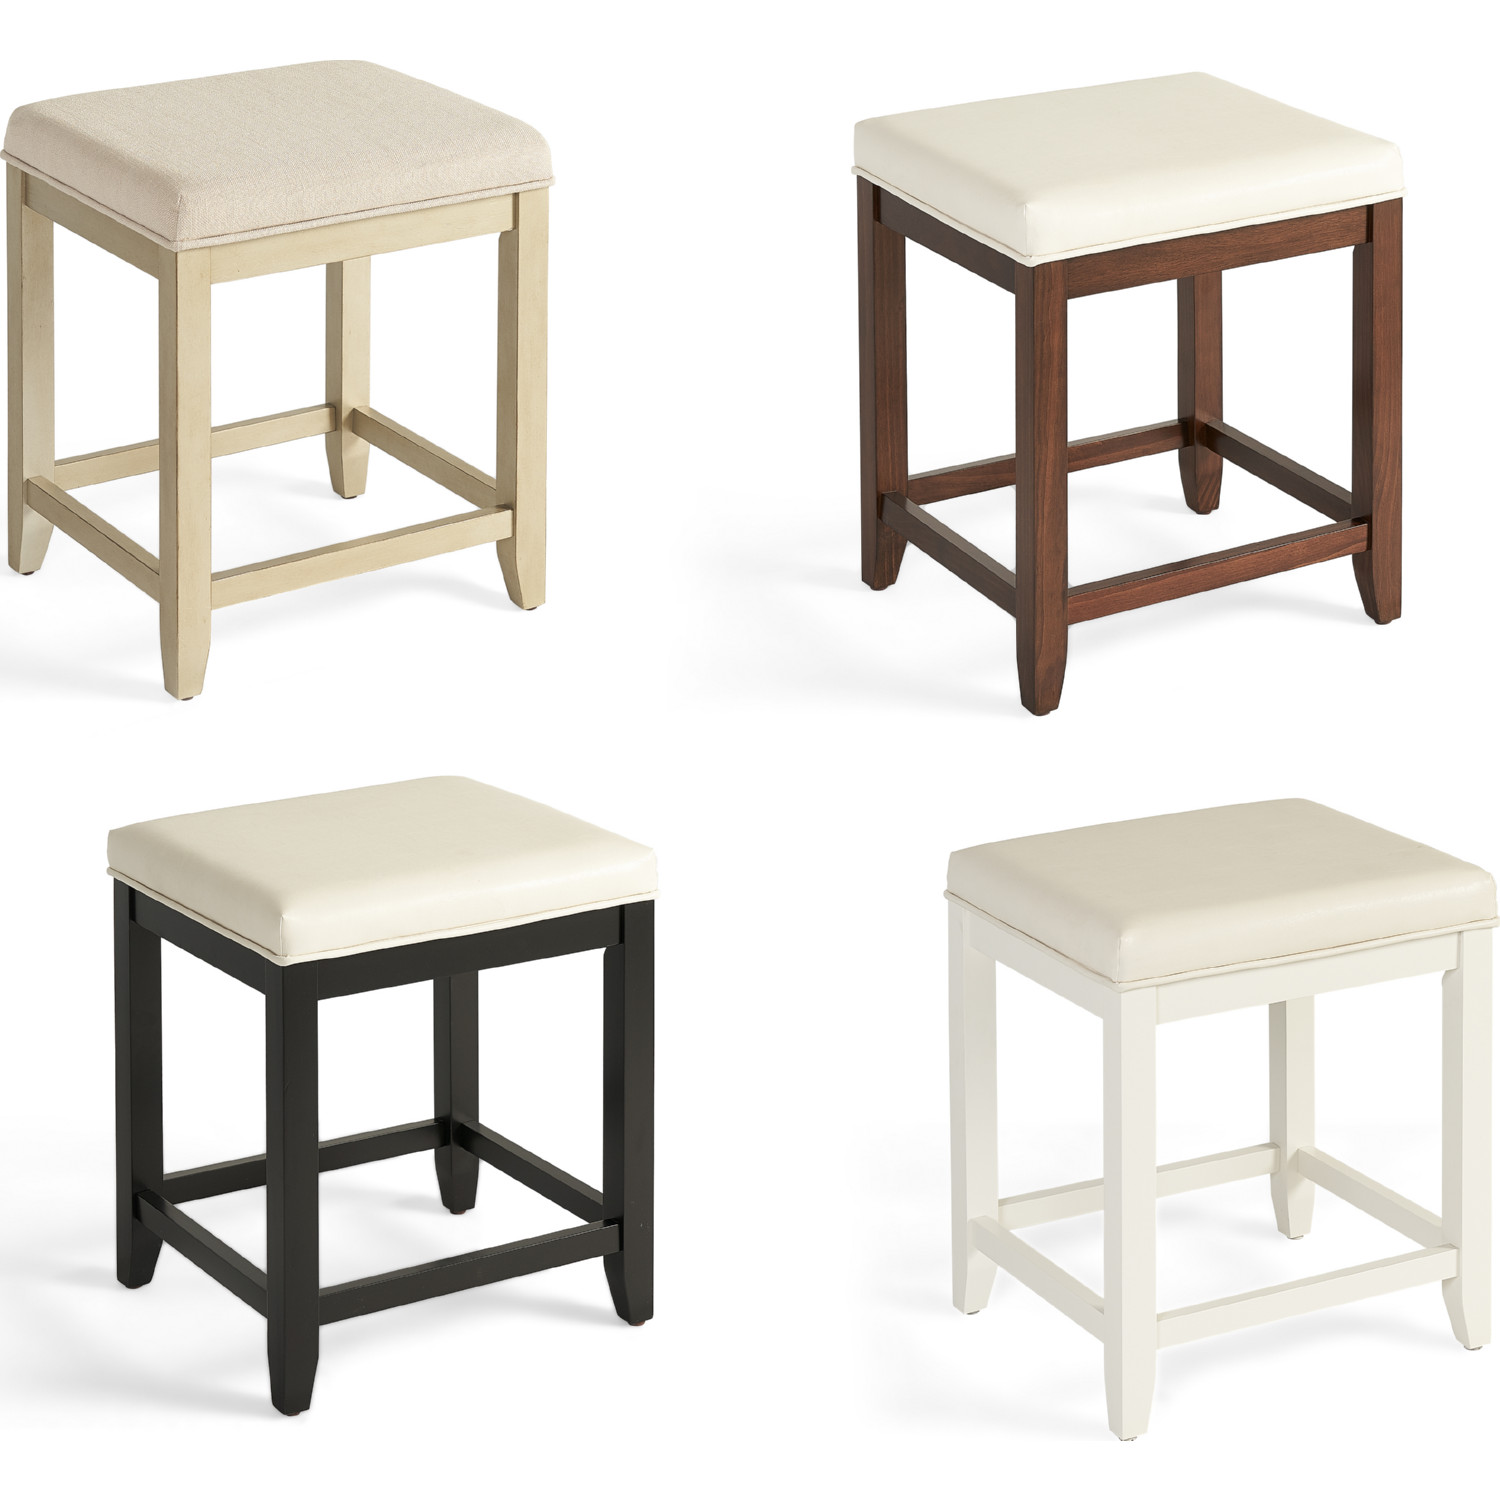 Fantastic Vista Vanity Stool In Distressed Gold W Creme Linen Seat By Crosley Alphanode Cool Chair Designs And Ideas Alphanodeonline